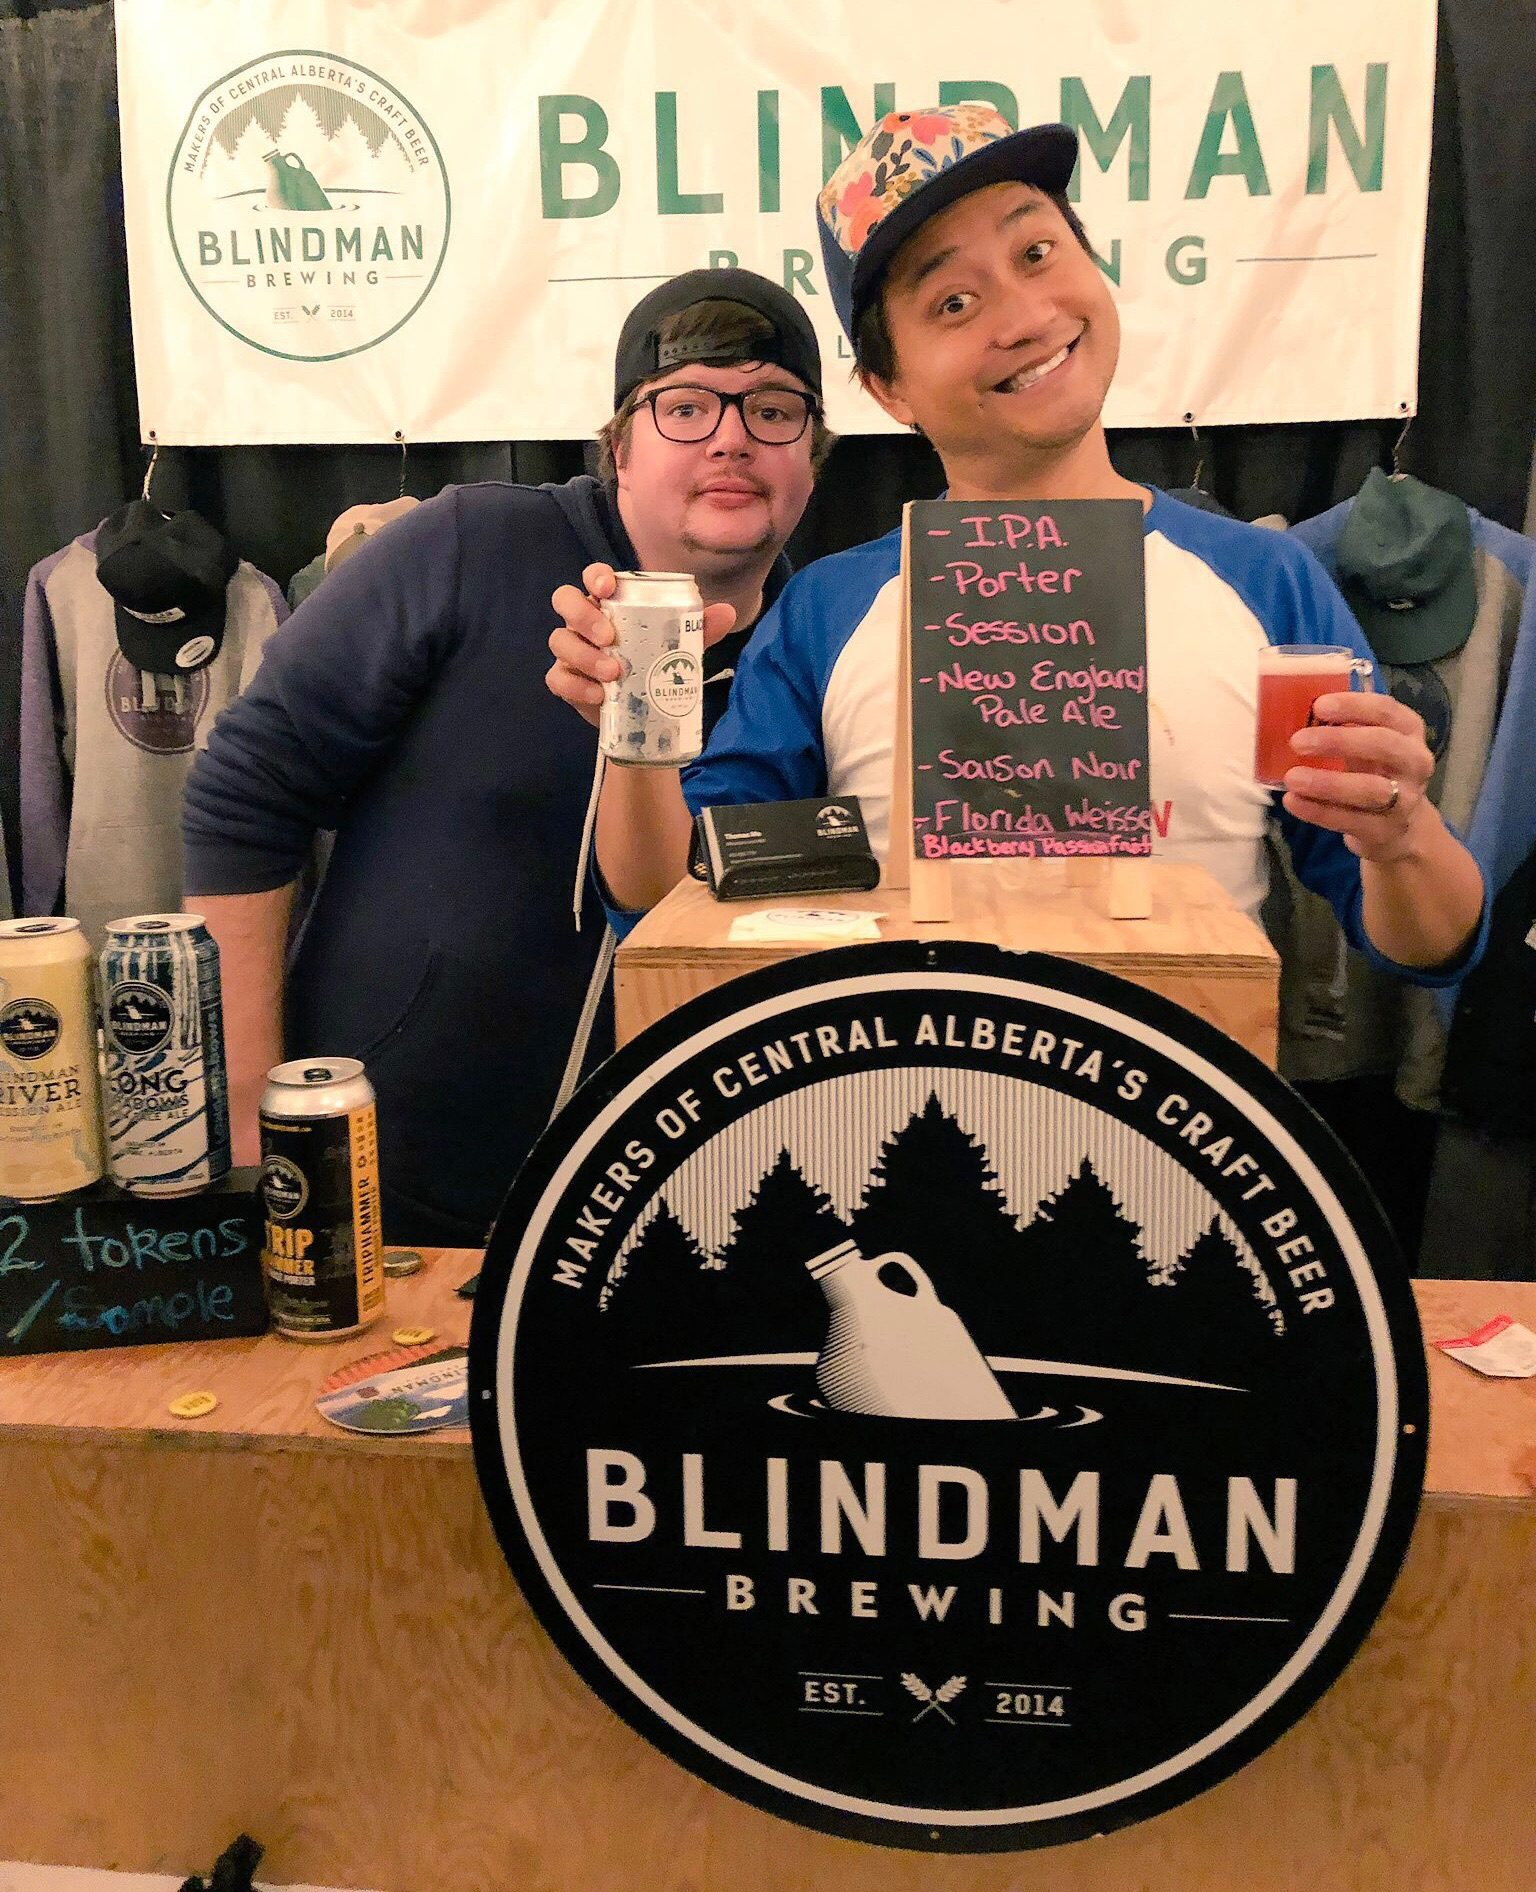 Blindman Brewing pouring at the Banff Craft Beer Festival.